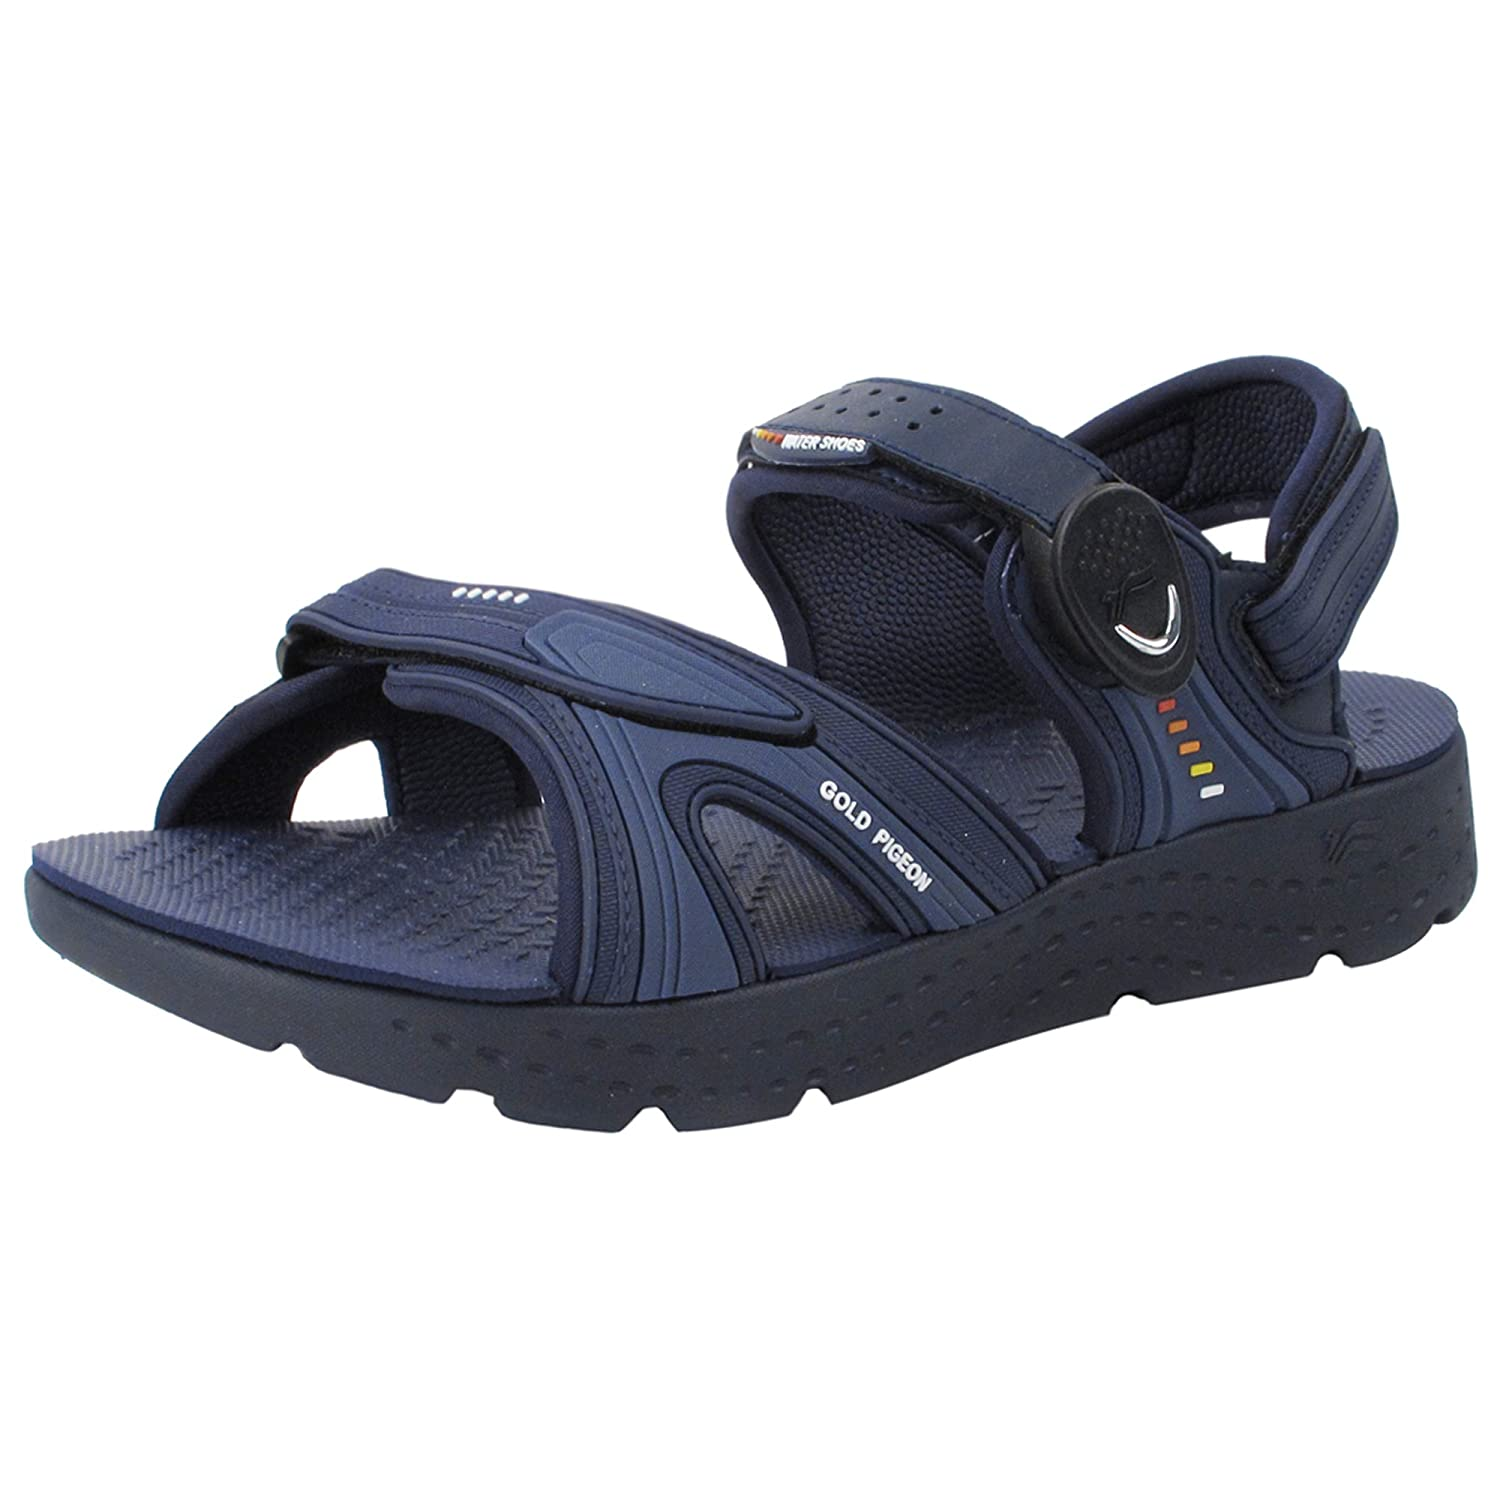 Gold Pigeon Shoes EVA Anti-Fatique Light Weight Sandals for Men & Women B07B4J965V EU41: Men 8.5/9 & Women 9/9.5|Snap Lock Sandal: 8693 Navy